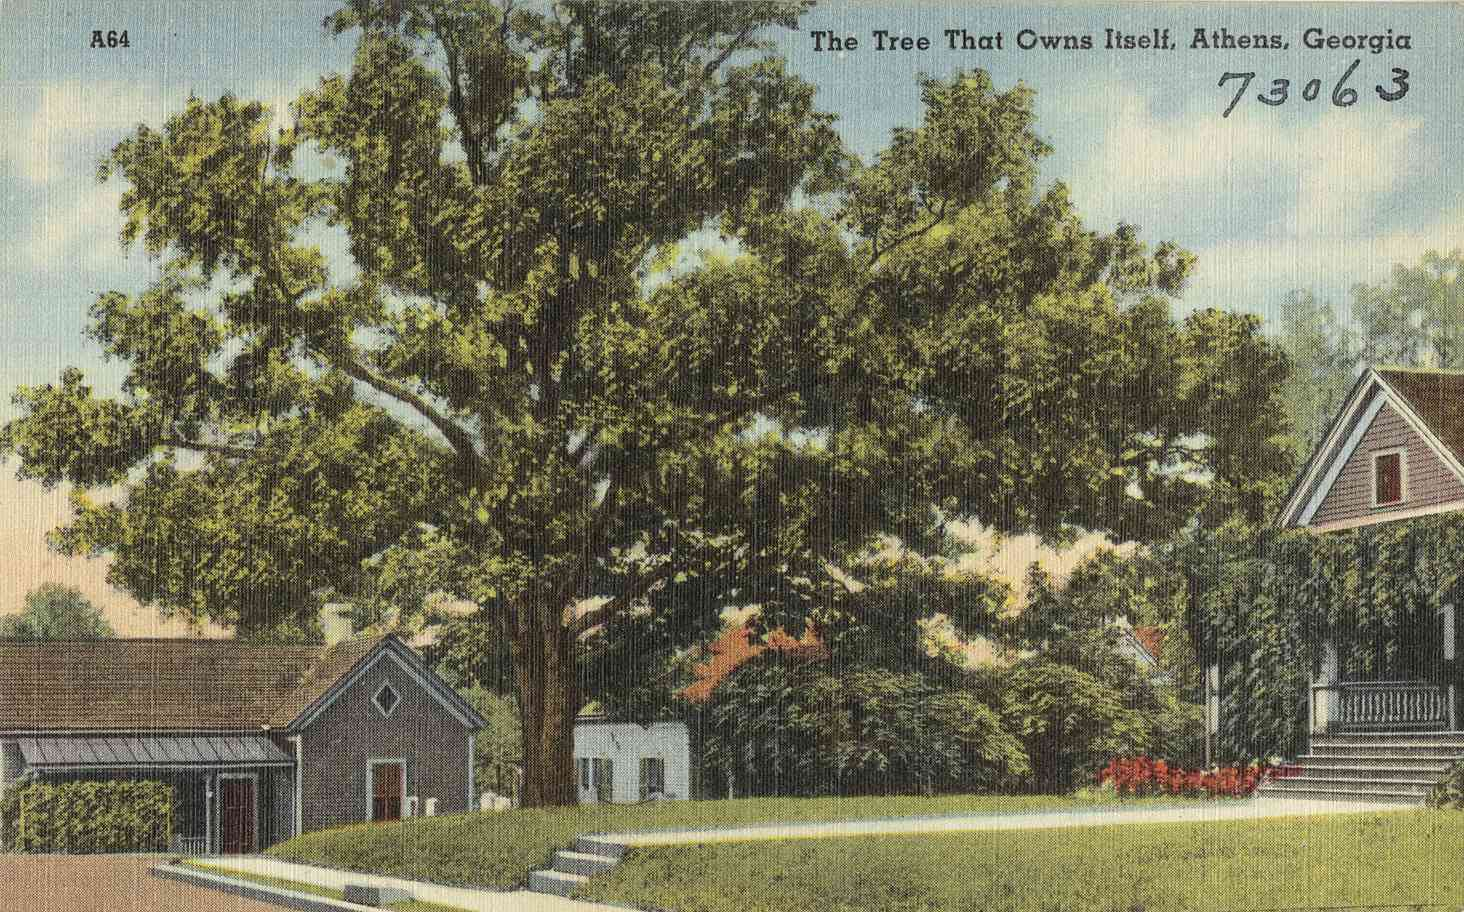 Postcard with an illustration of the tree that owns itself and surrounding buildings